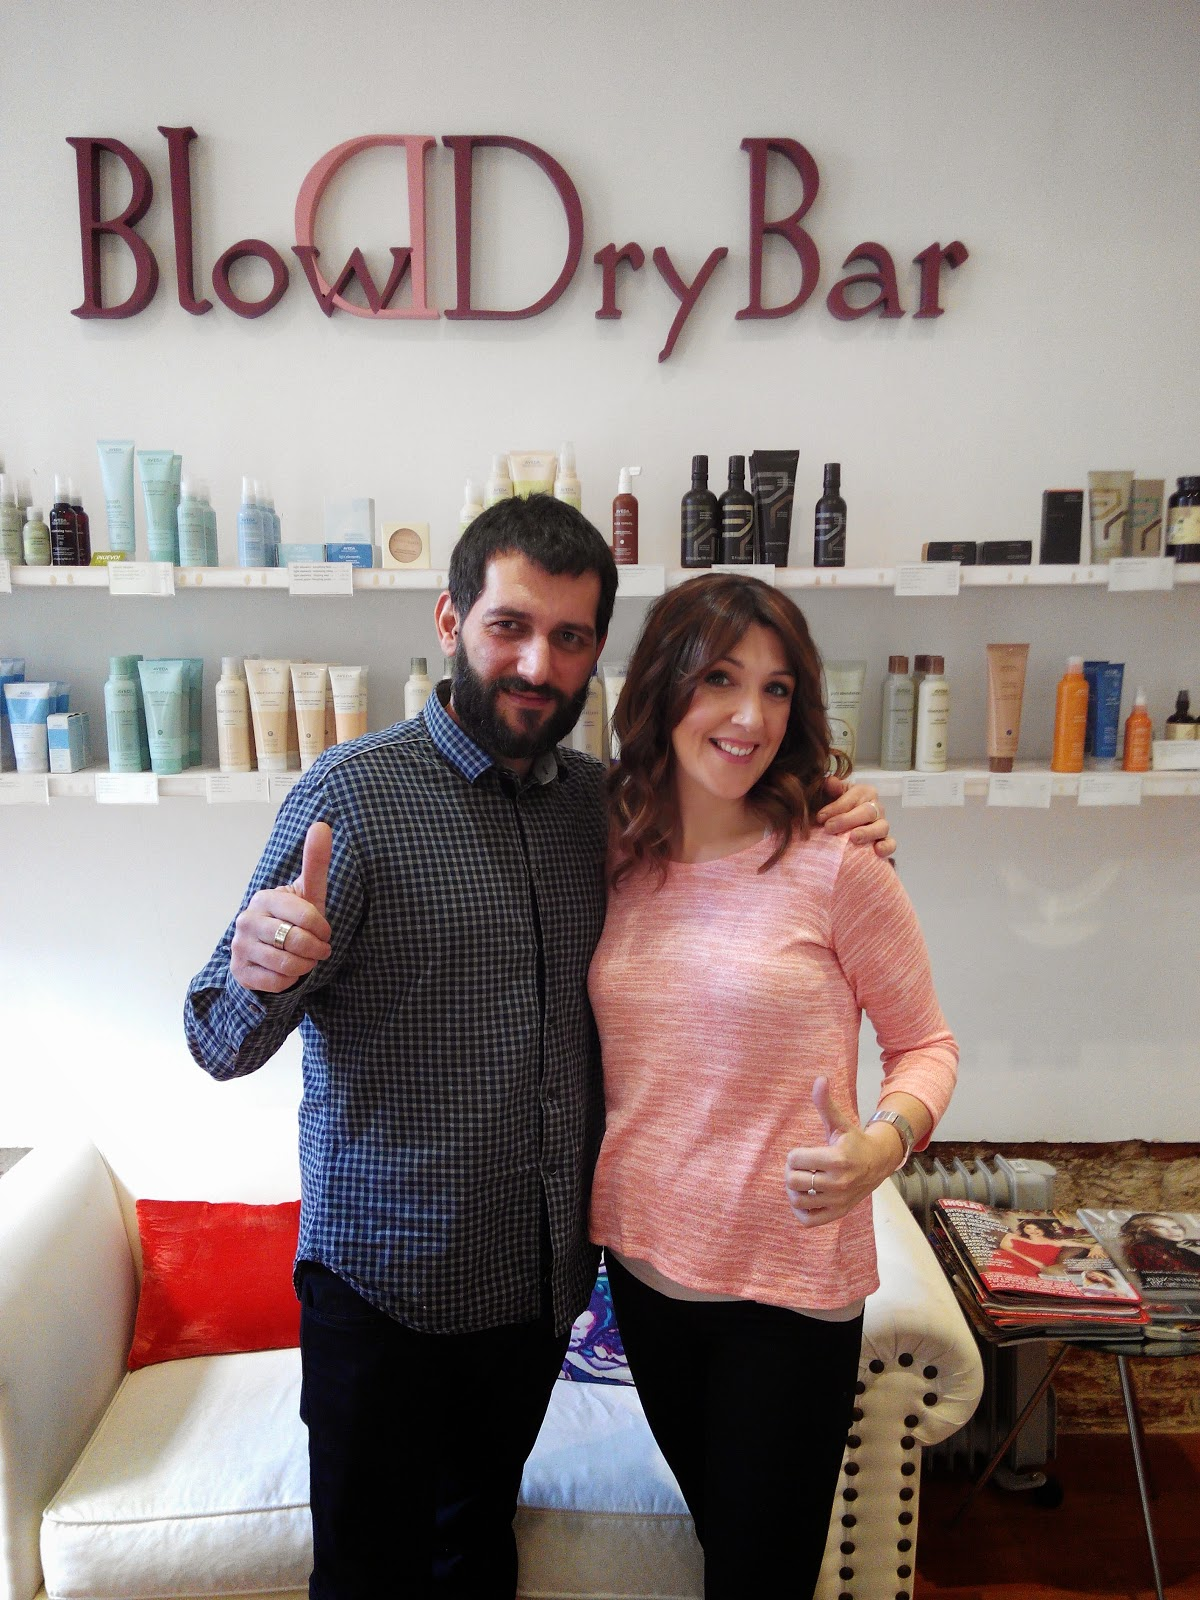 Blow Dry Bar Madrid, bar de peinados y maquillaje